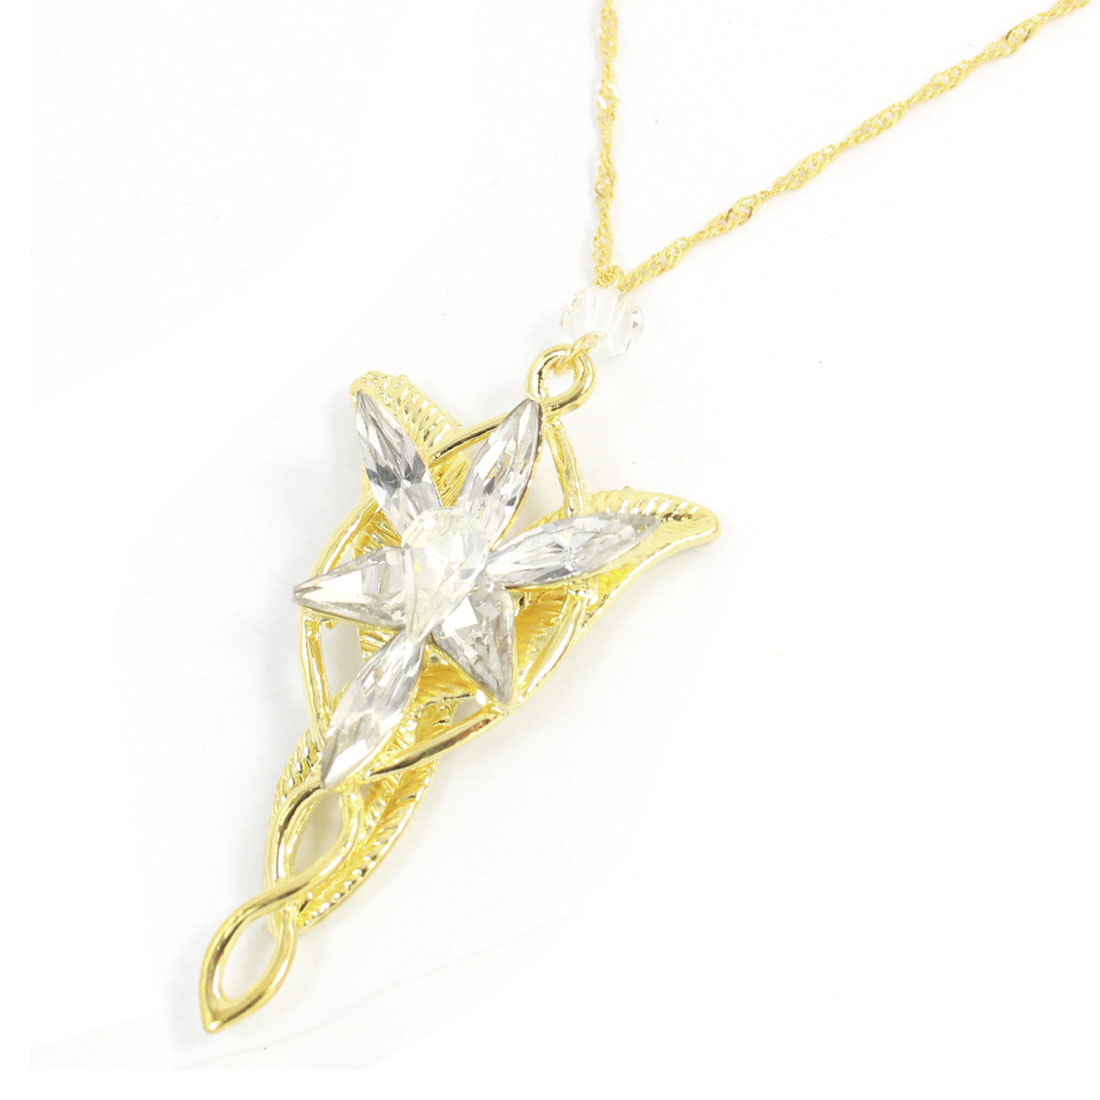 Floral Leaves Design Faux Crystal Pendant Gold Tone Chain Necklace